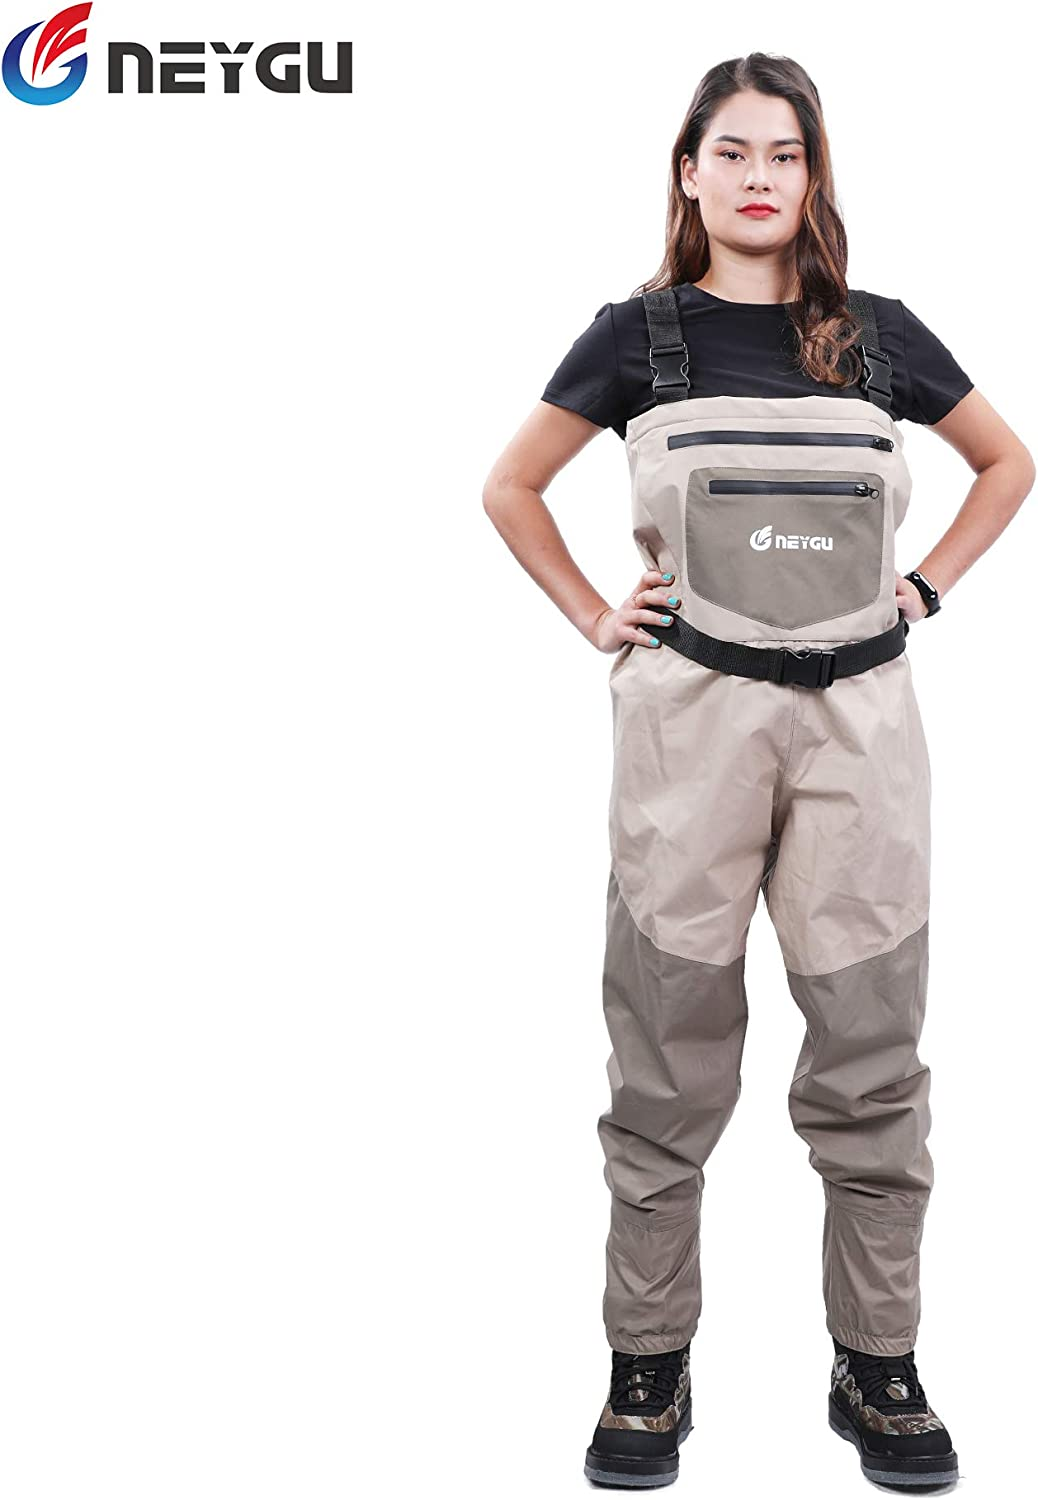 NEYGU Men's Breathable Fly Fishing Wader, Waterproof Chest Wader with Stocking Foot